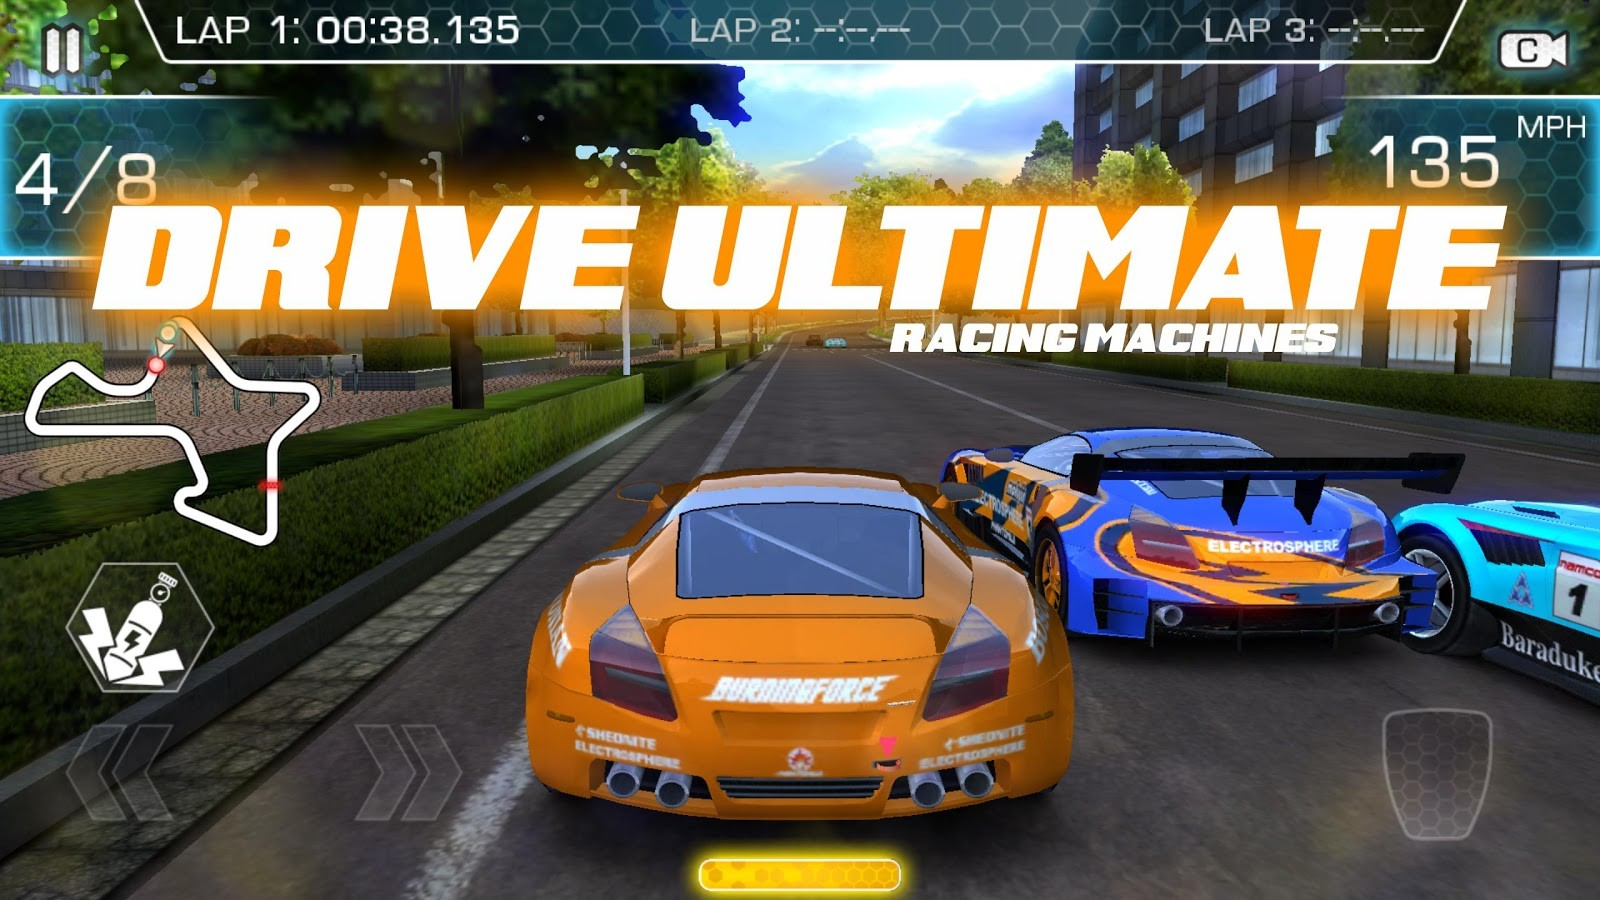 Ridge Racer Slipstream Apk Mod